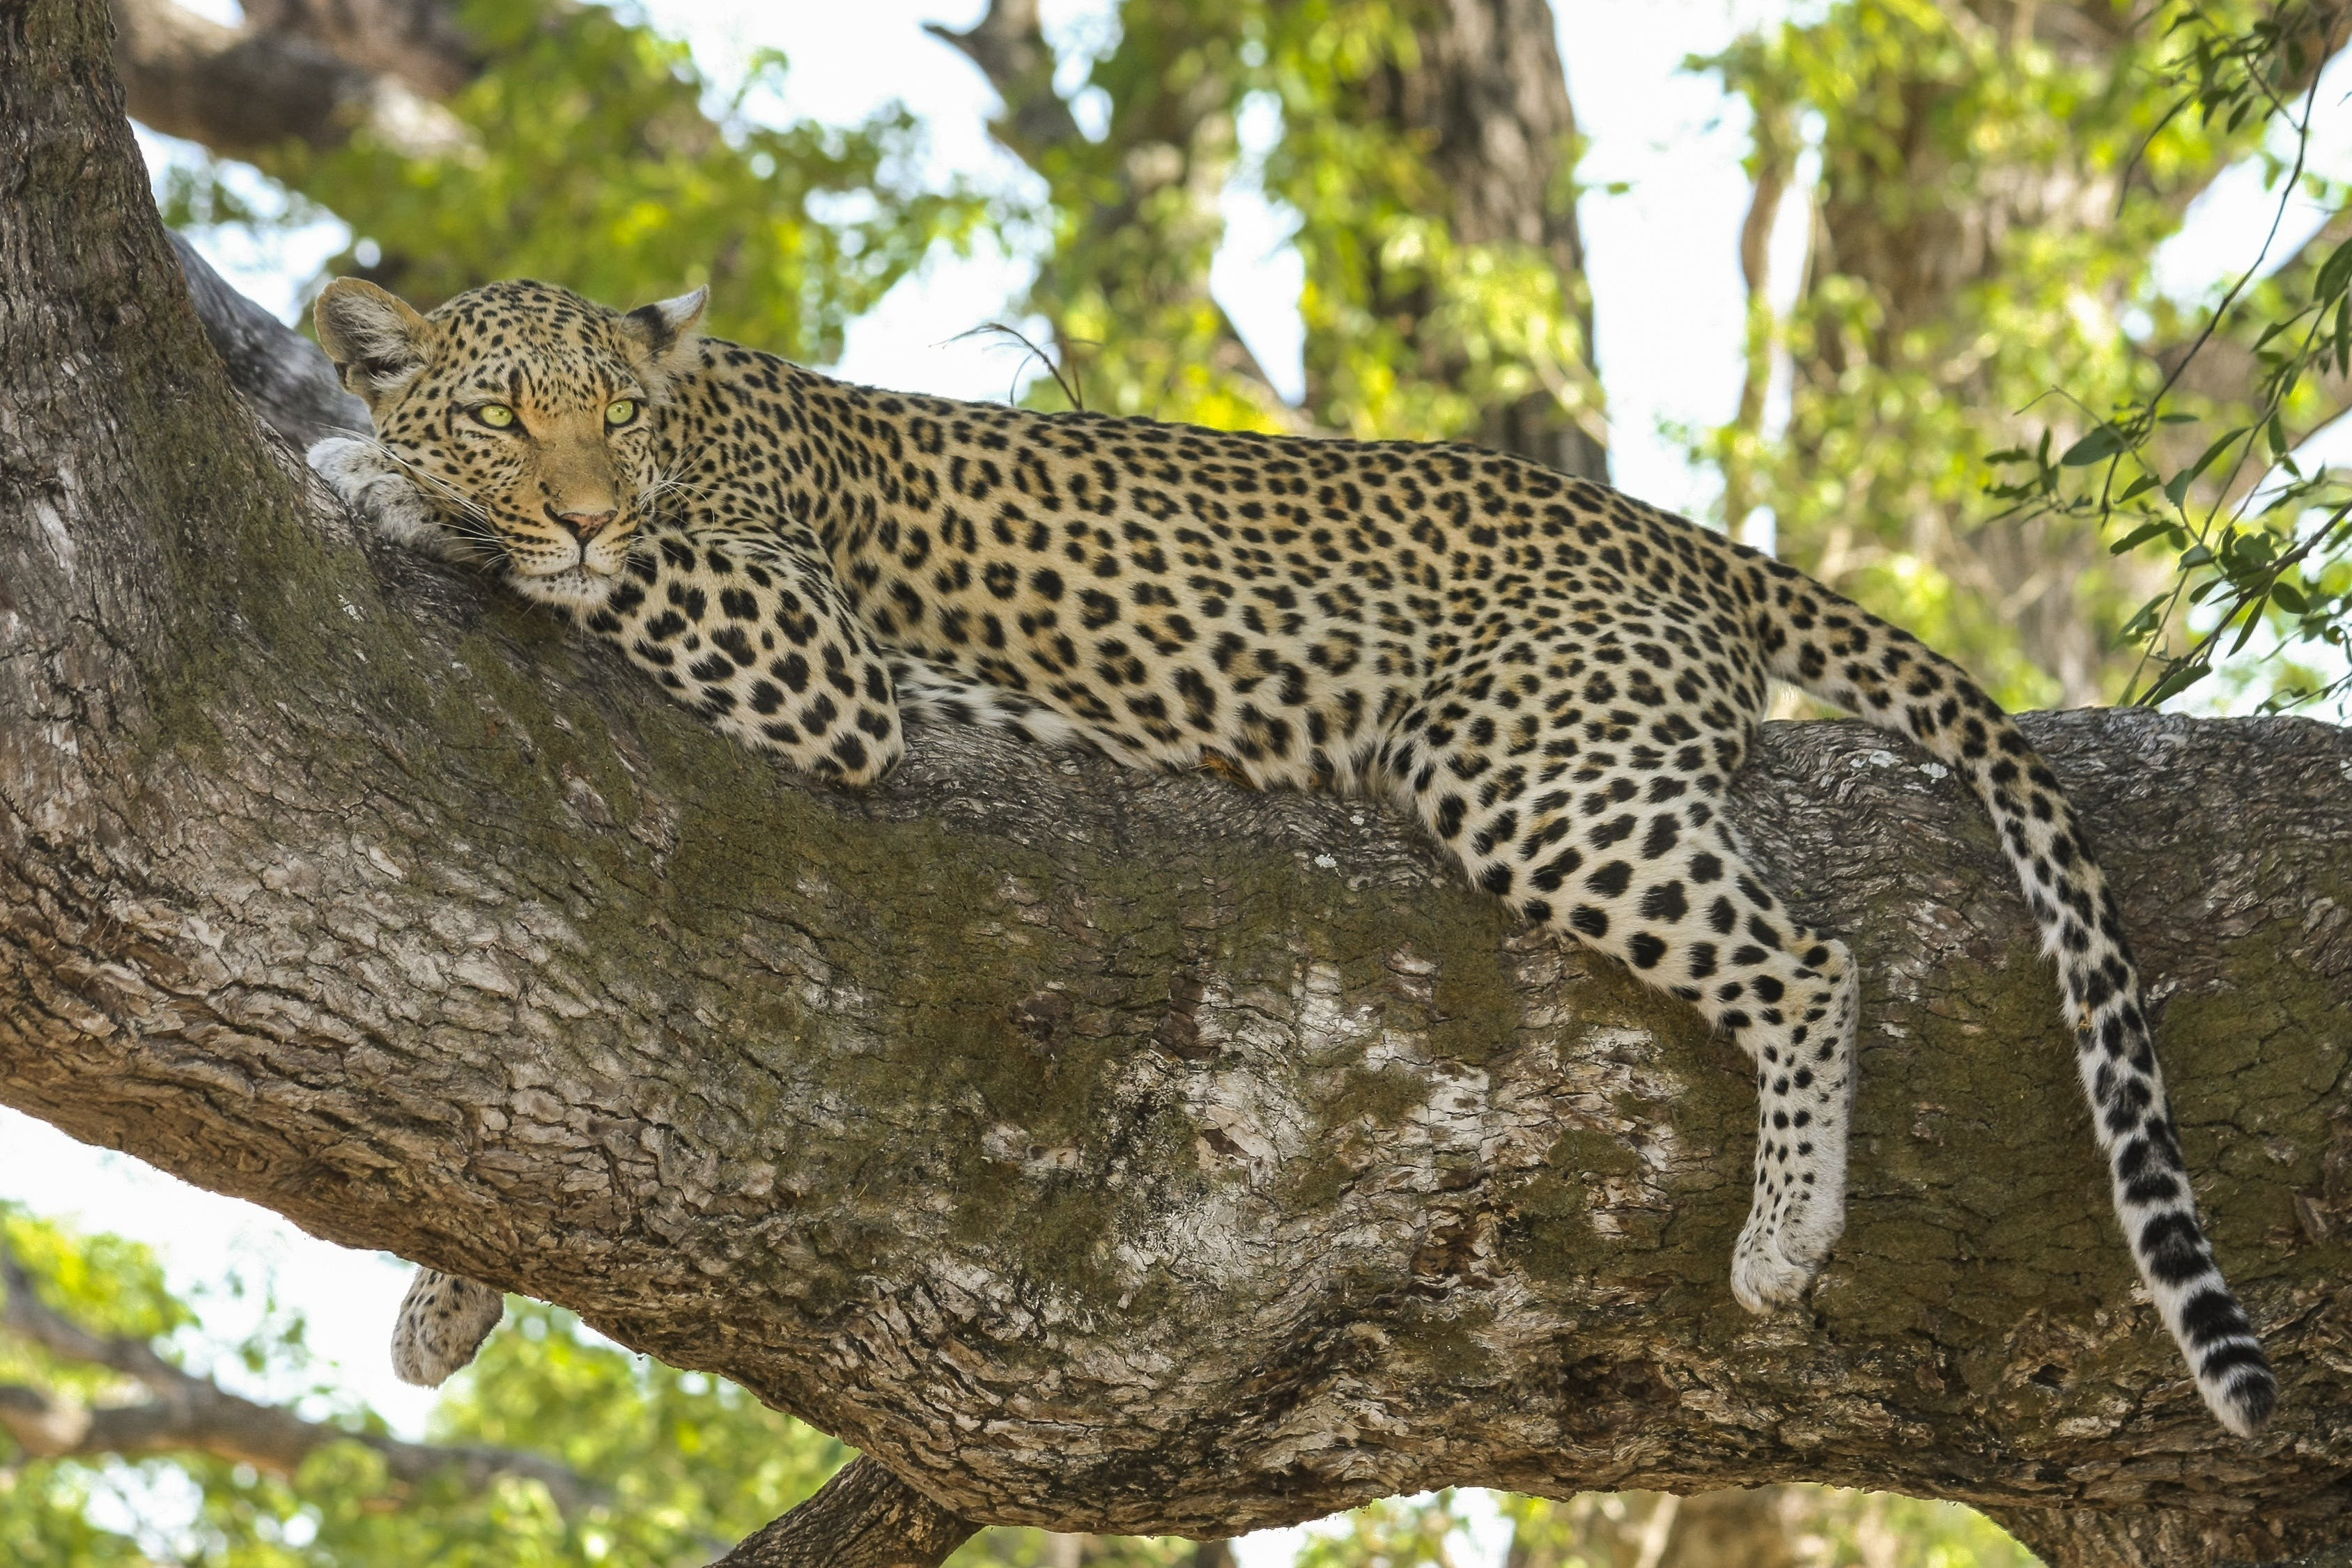 Cheetah Lying on Tree Branch during Day Time